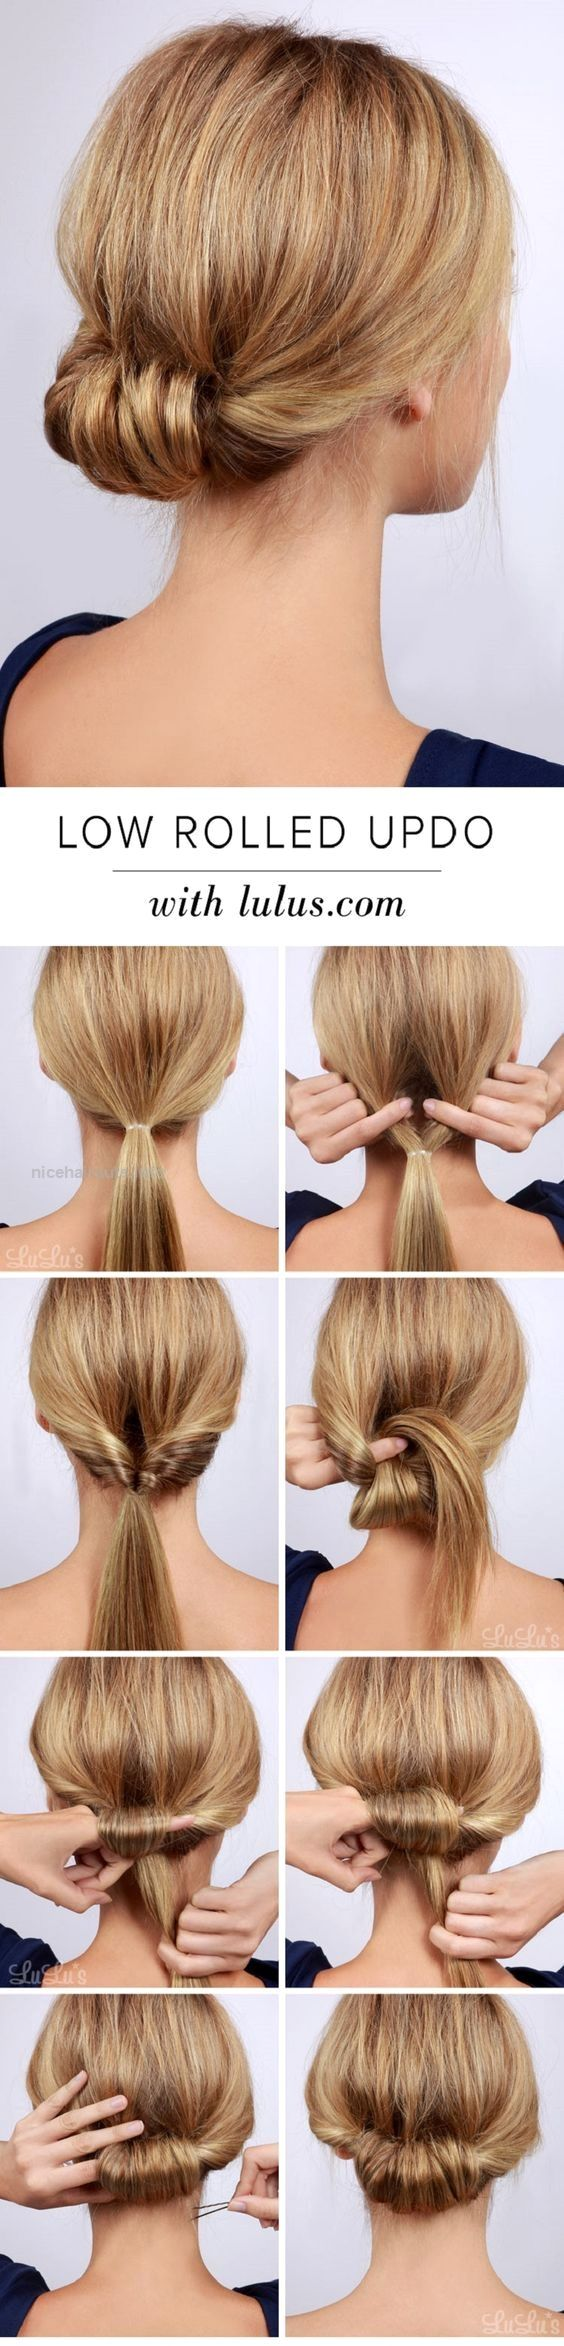 25 Stylish and Appropriate Hairstyles for Work – Trend To Wear  25 Stylish and Appropriate Hairstyles for Work – Page 3 of 3 – Trend To Wear  http://www.nicehaircuts.info/2017/05/24/25-stylish-and-appropriate-hairstyles-for-work-trend-to-wear-5/